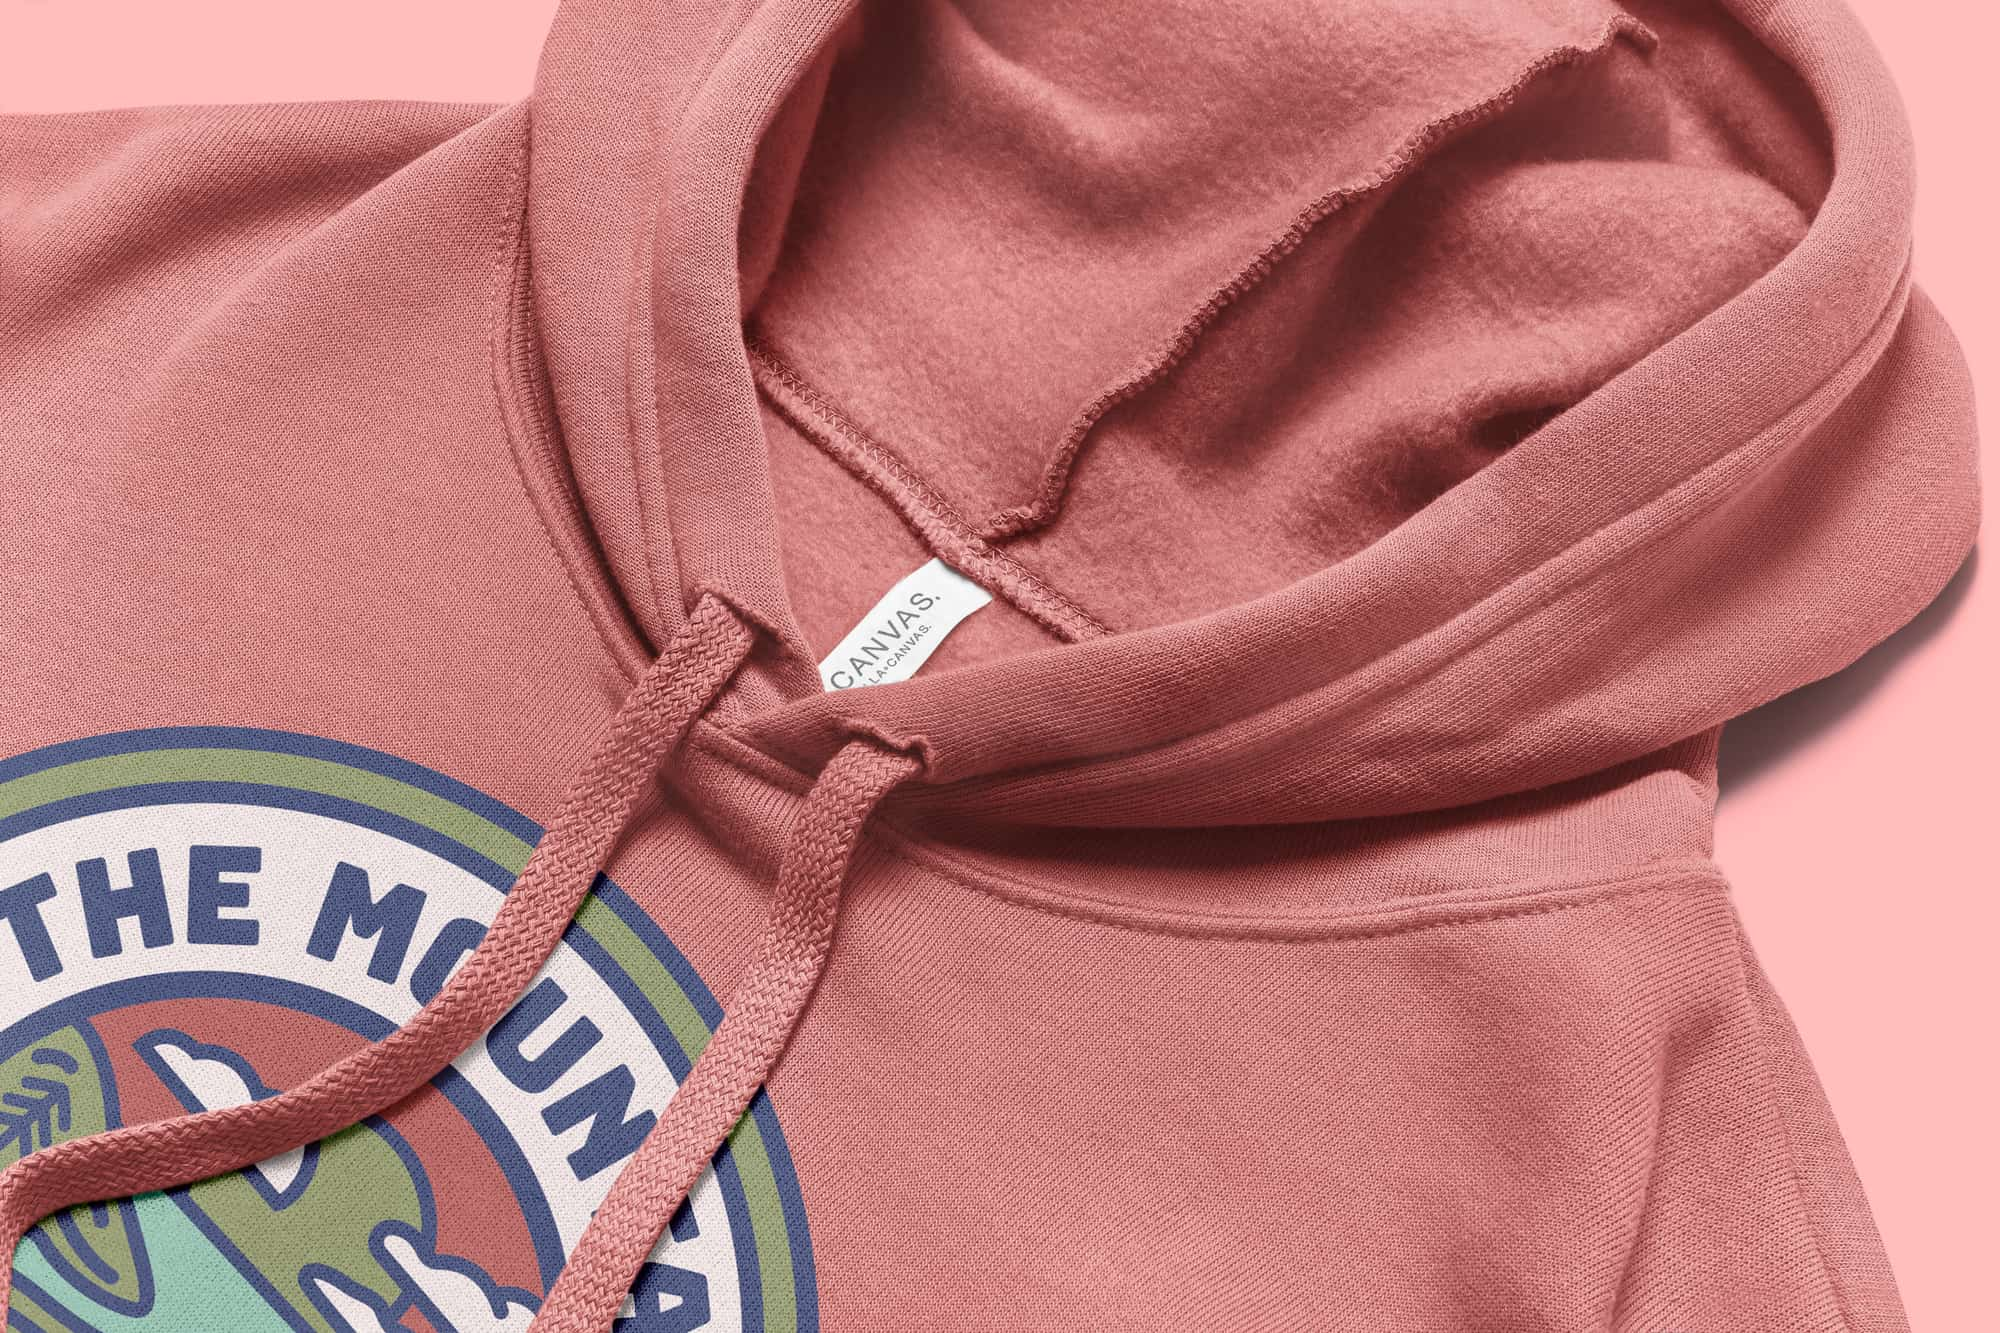 Detail of the hood and drawstrings of the Bella Canvas Sponge Fleece Pullover Hoodie.